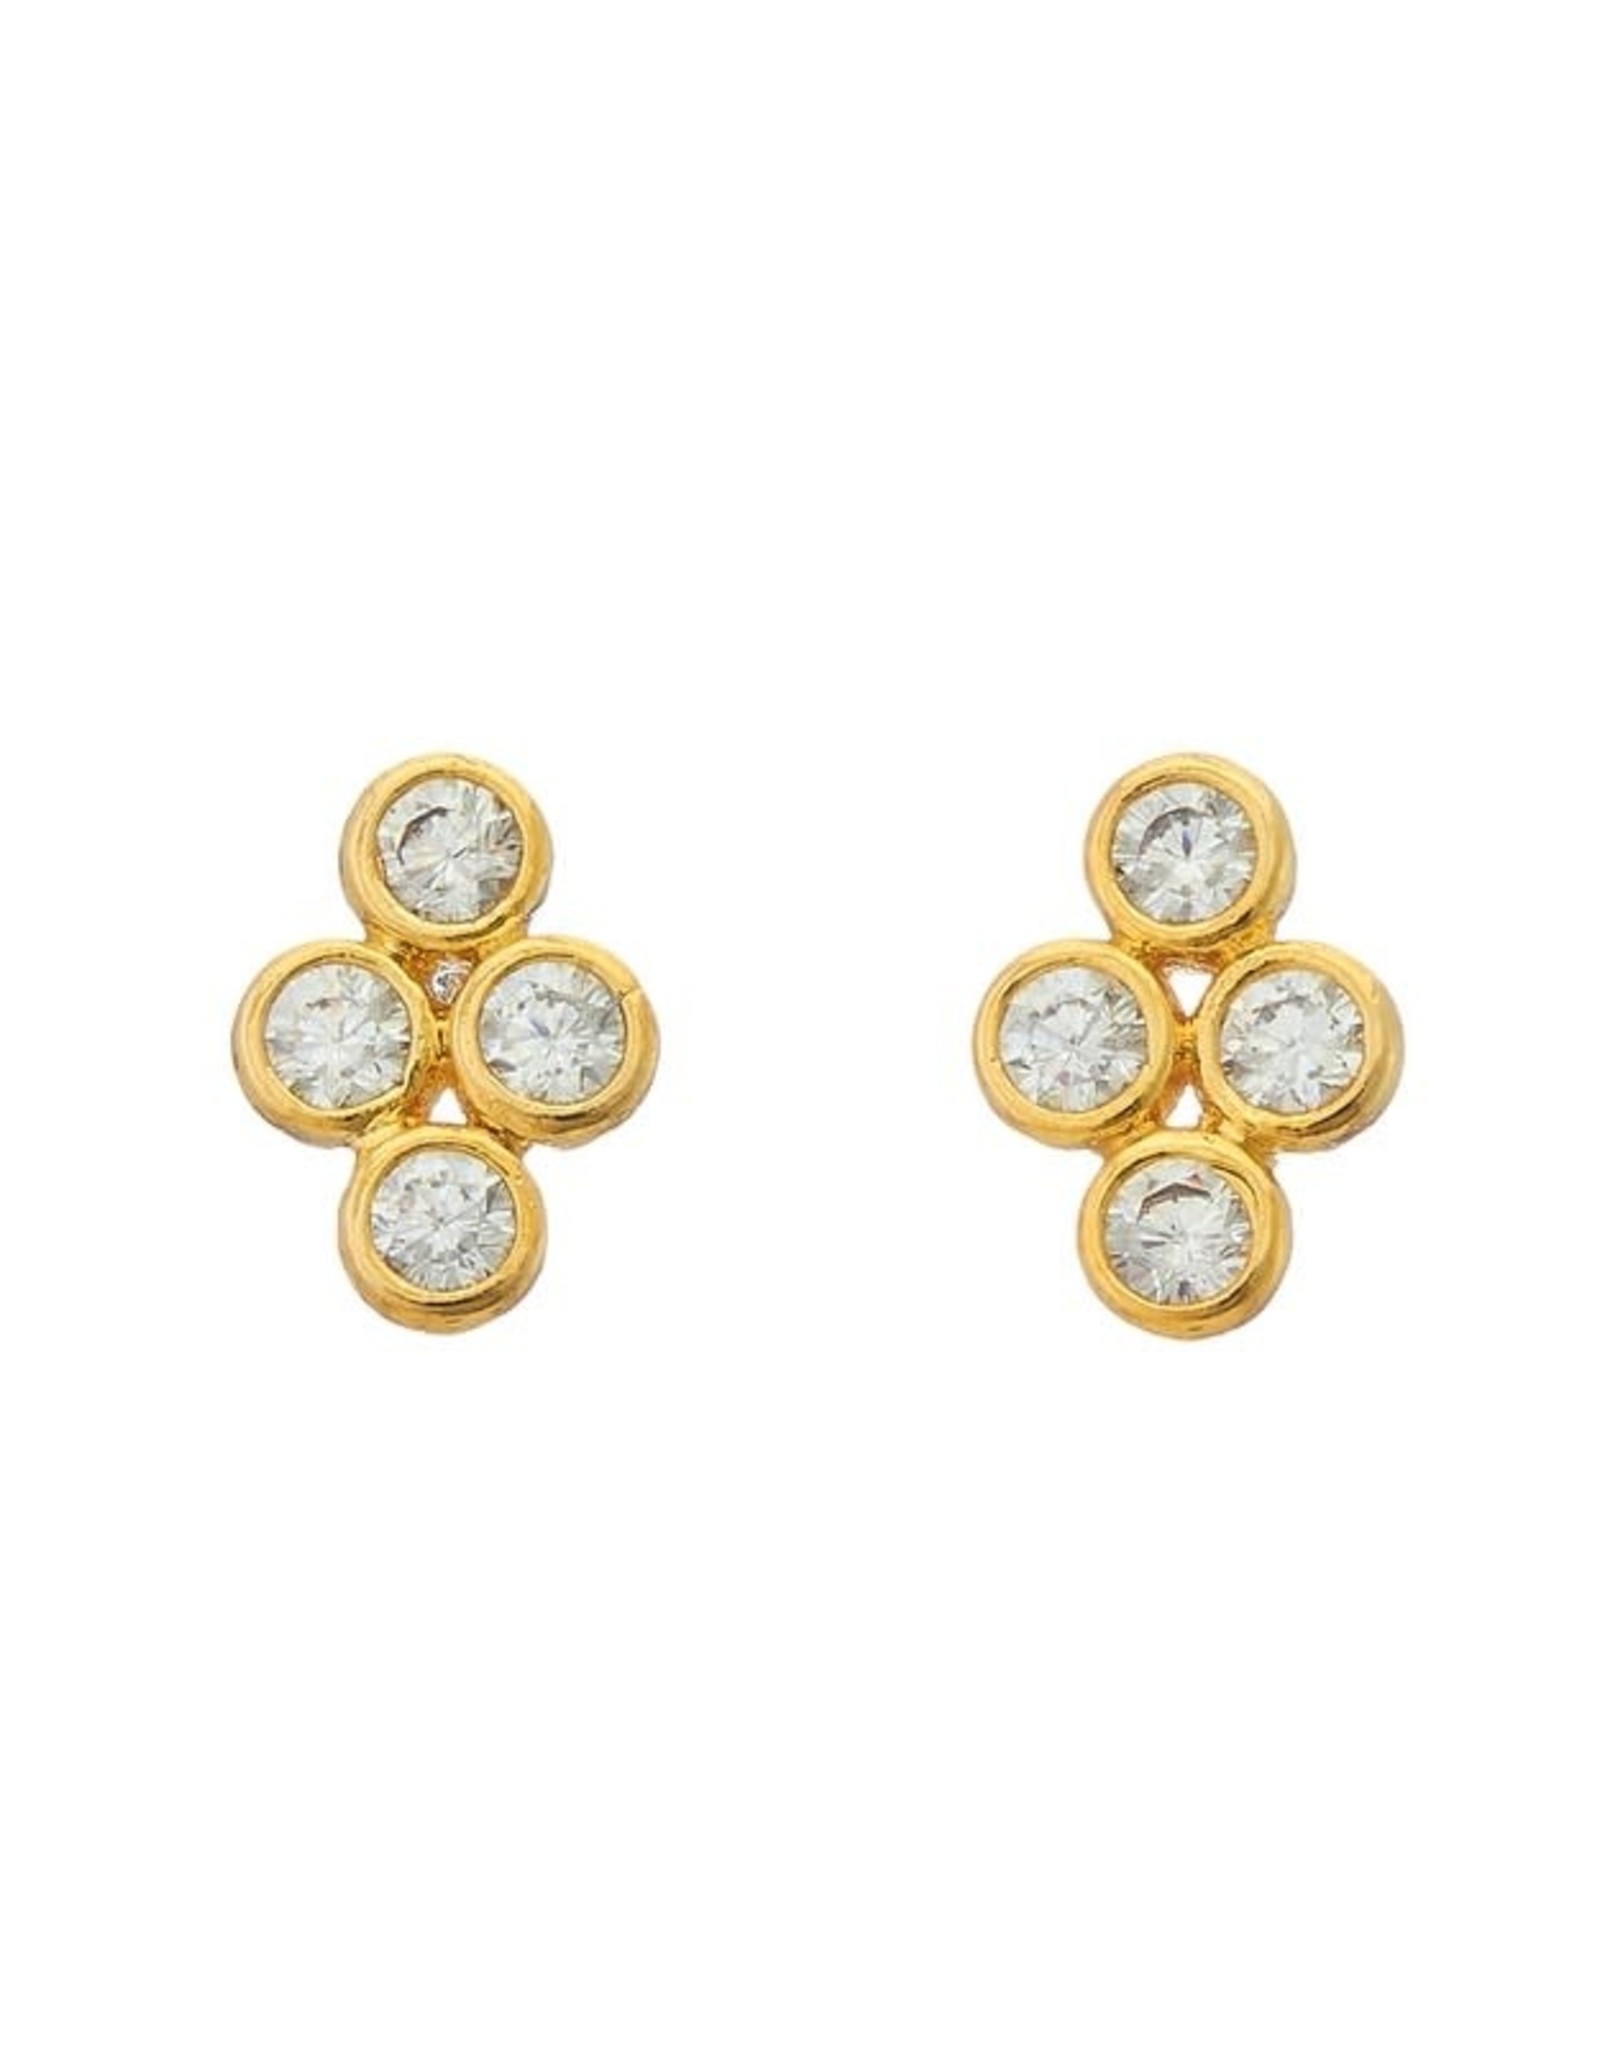 GOLD FOUR CZ STONE STUD EARRING